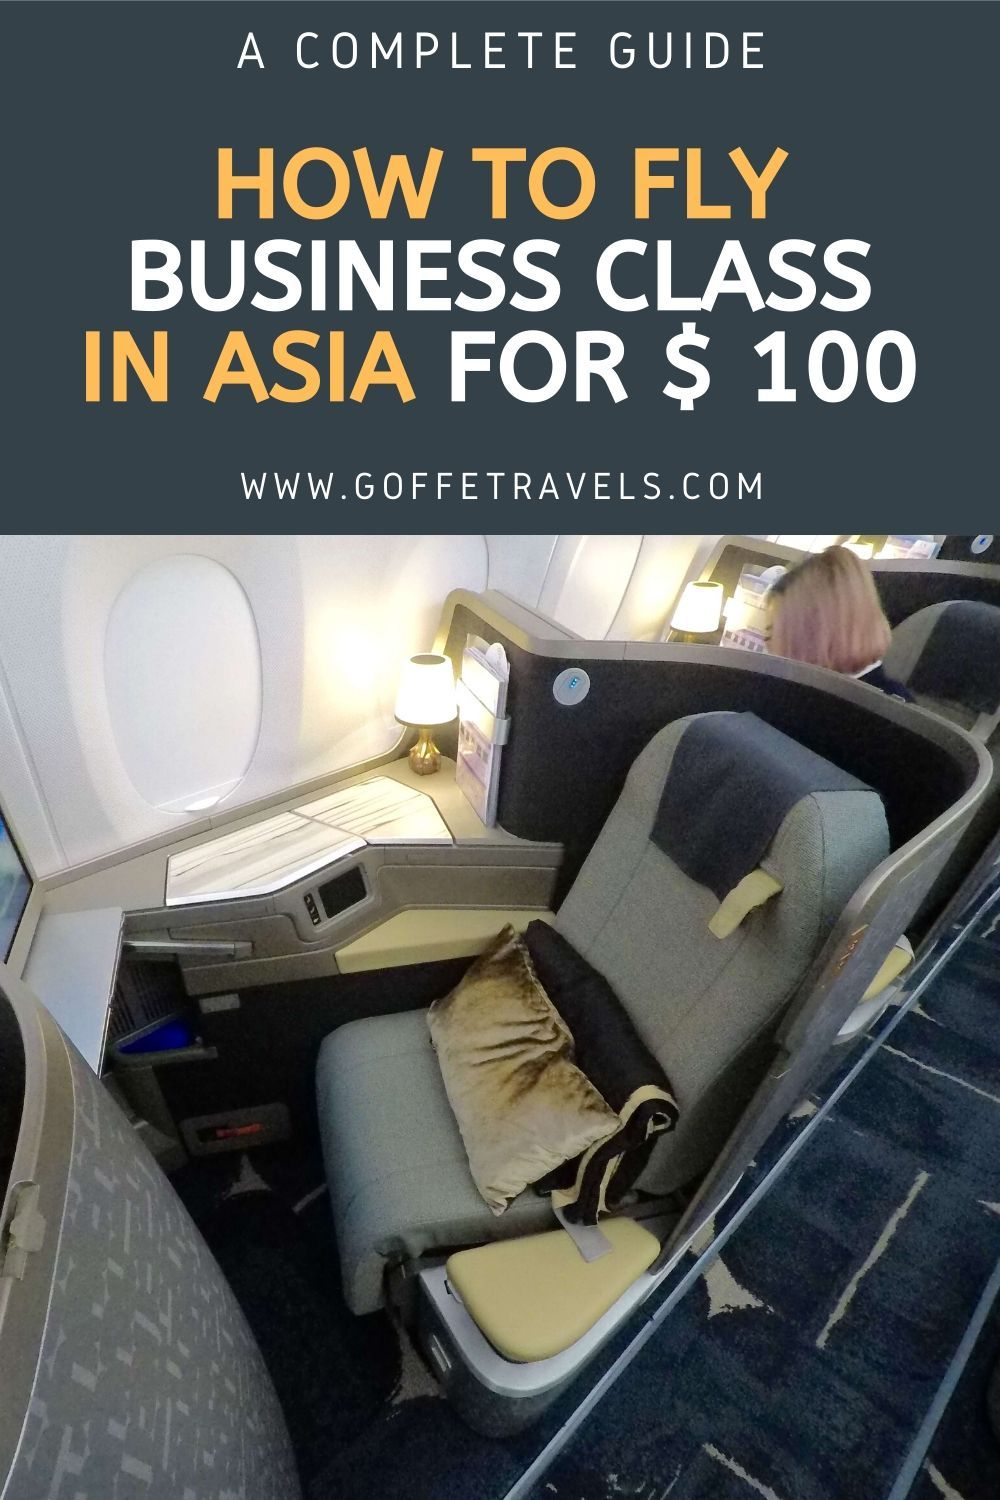 Guide about how to fly business class in Asia for 100